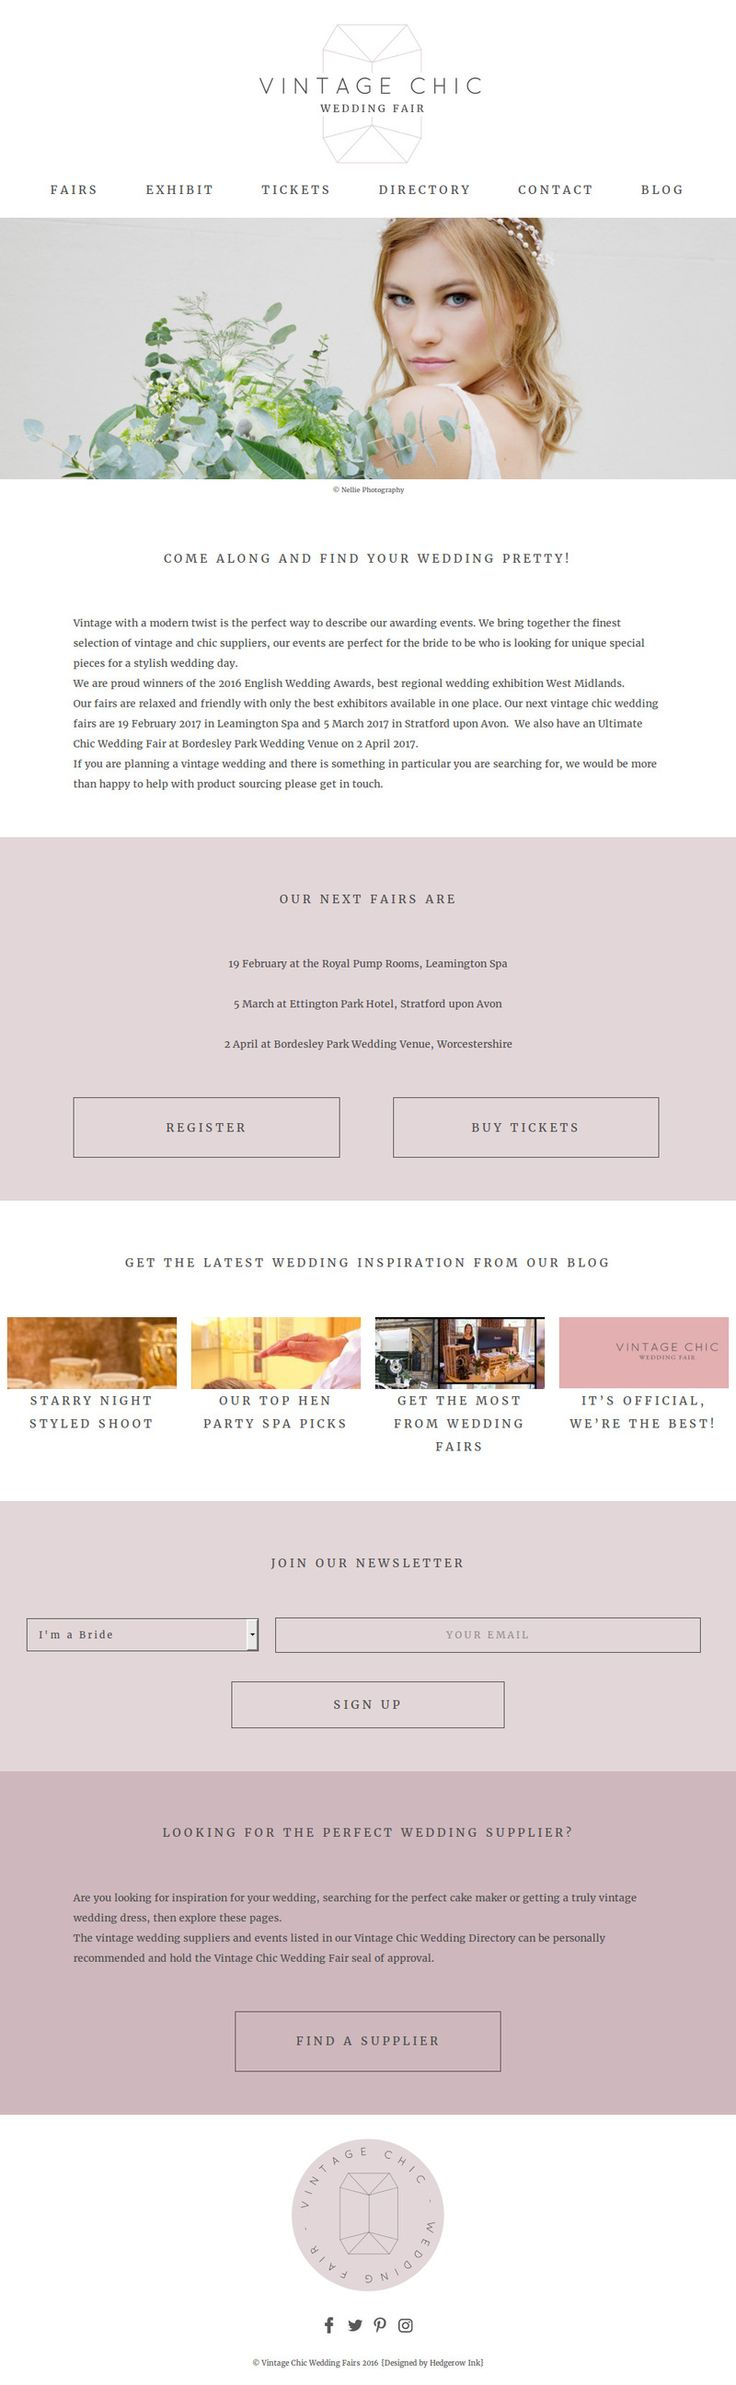 Vintage inspired web design for Vintage Chic Wedding Fair. Wordpress build with dusty blush pink and gem inspired shapes.